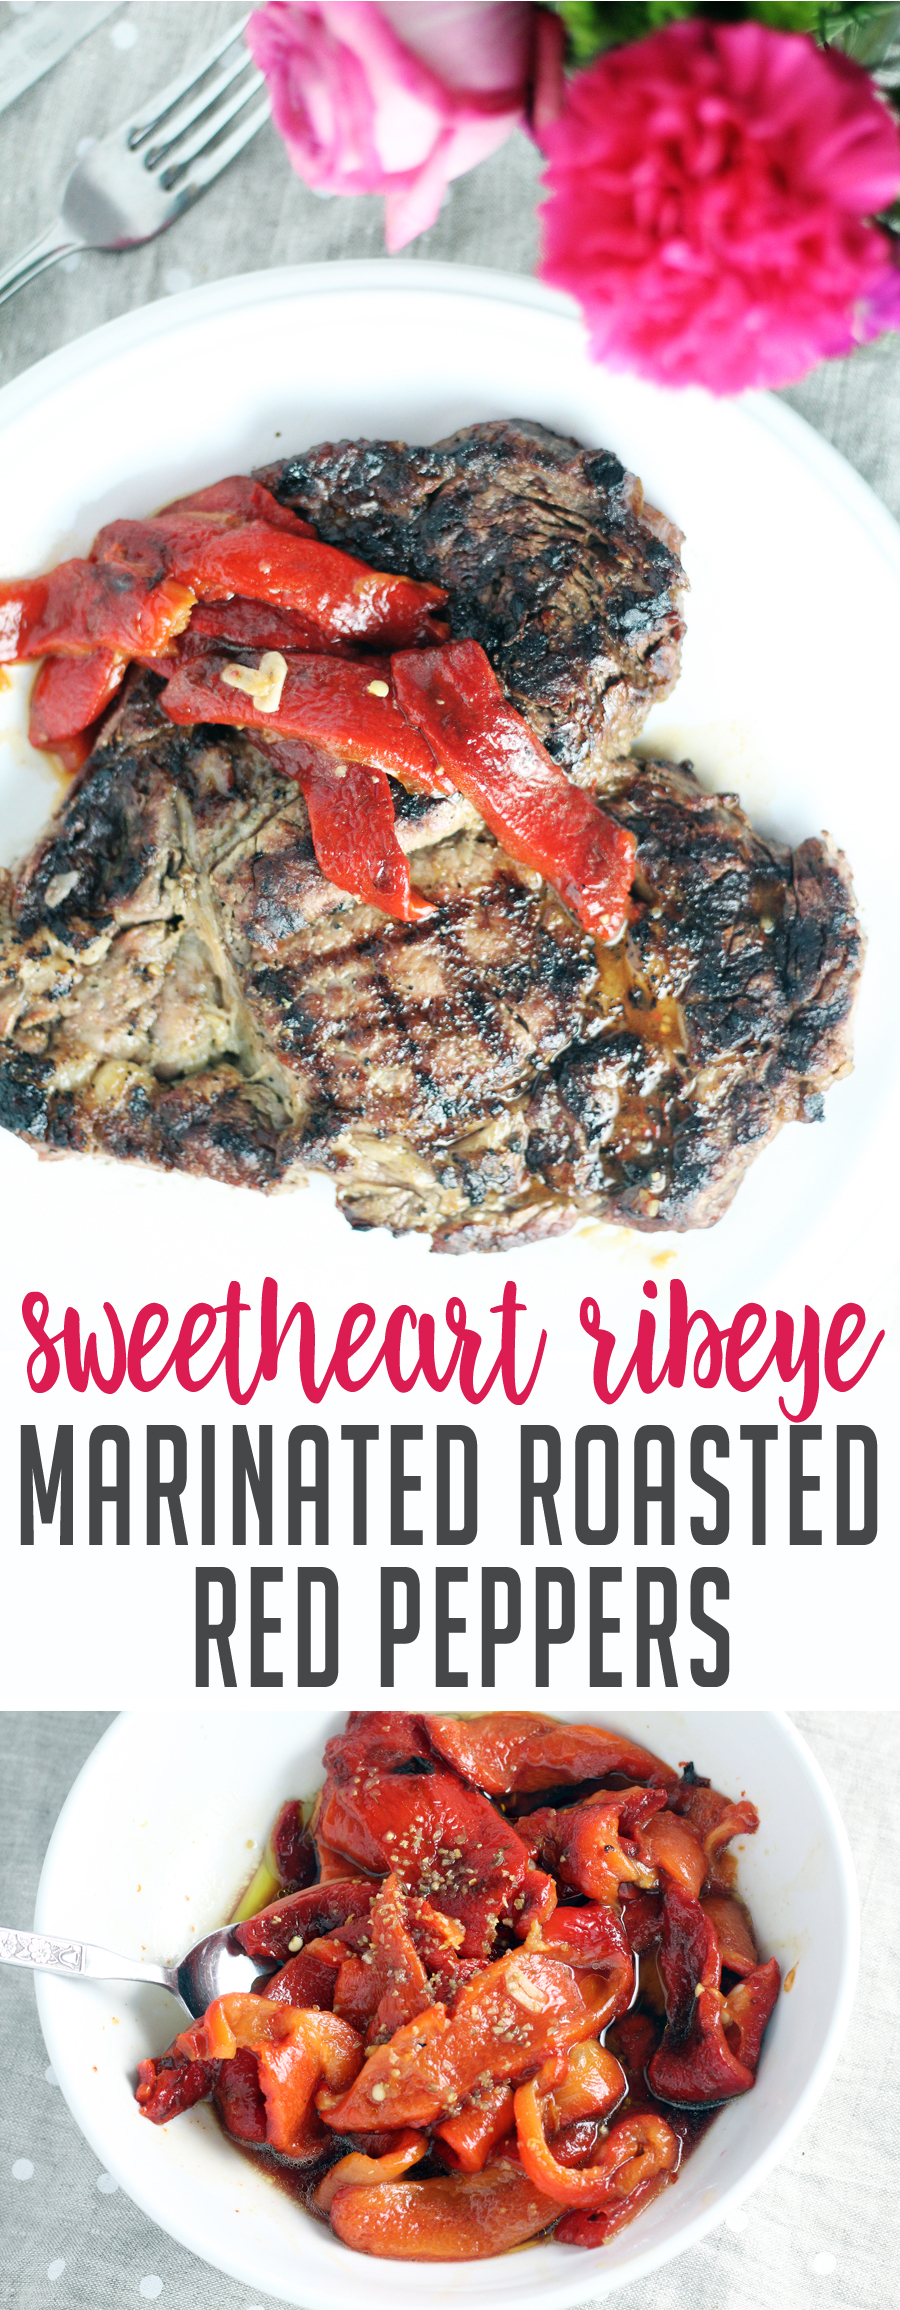 There's a way to a man's heart, ladies. It happens to be under this recipe for Marinated Roasted Red Peppers. That's right, a Sweetheart Ribeye. And let's be honest, this might be the way to a woman's heart, too, so pay attention. ♡ ♡